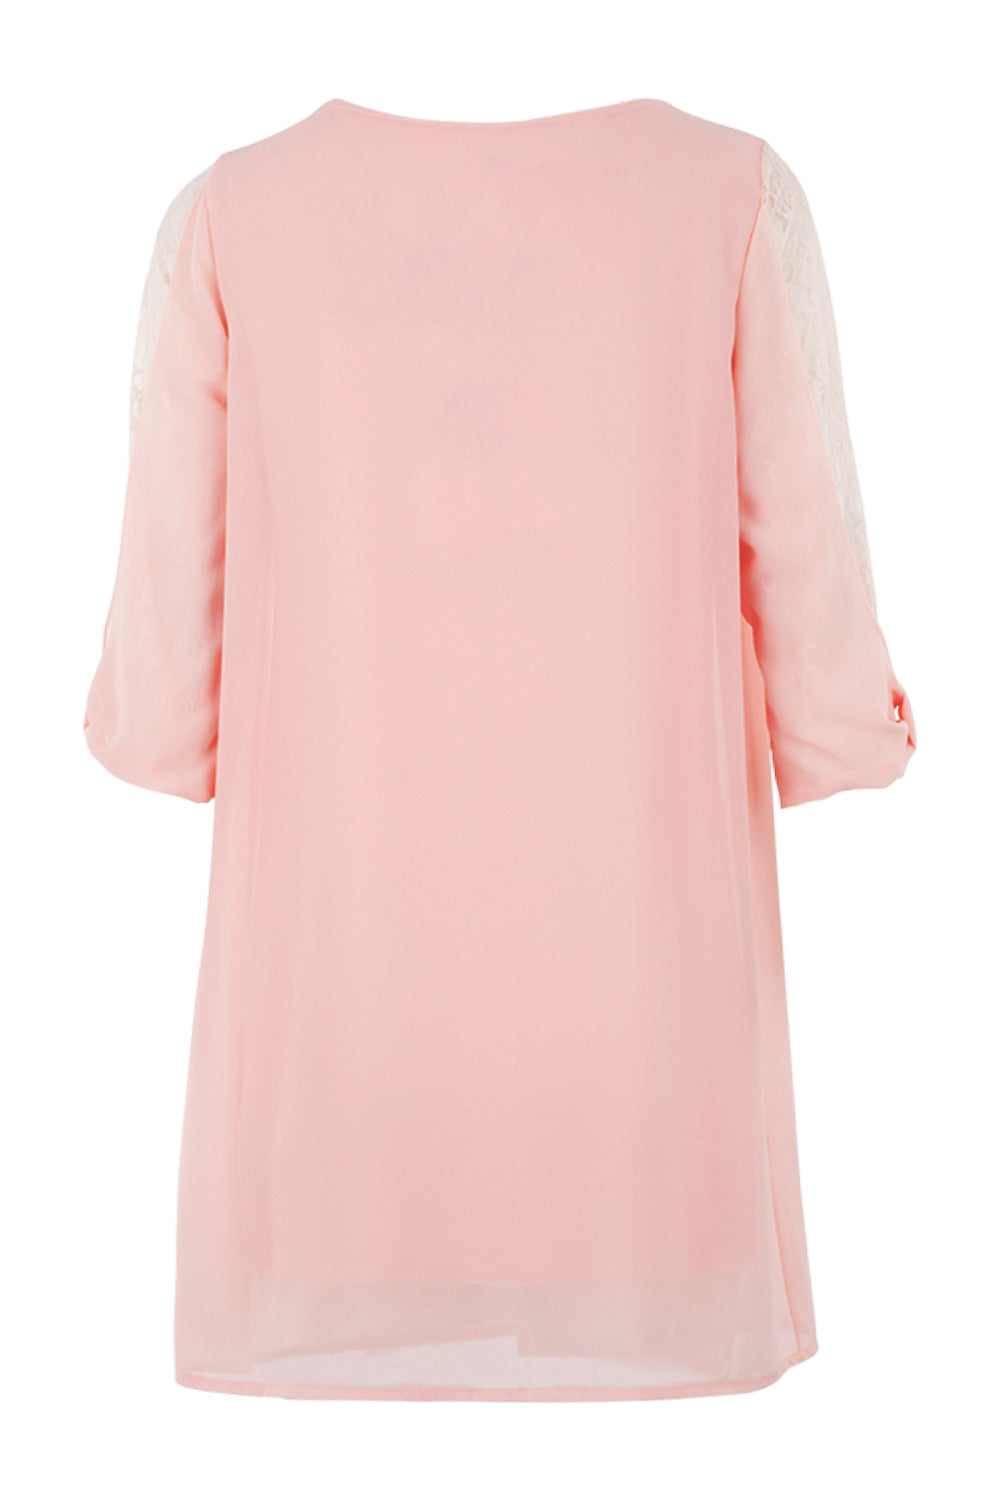 Lace Sleeve Smock Dress - Izabel London